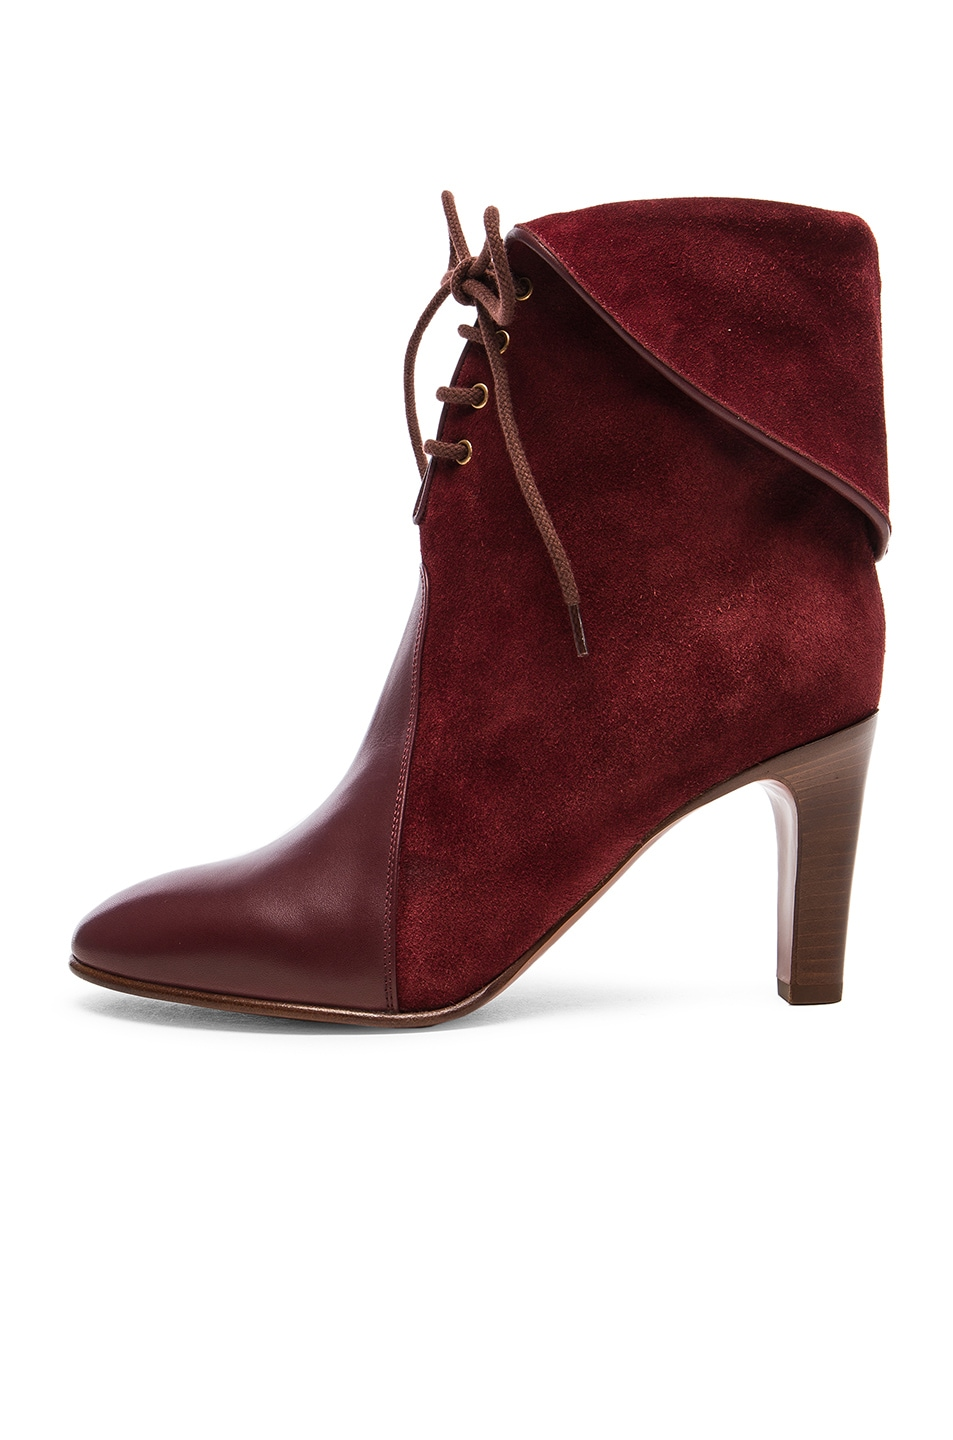 Kole Lace-Up Leather boots Chloé Buy Cheap Discount Get Authentic Sale Online Wide Range Of Cheap Online Free Shipping Comfortable Cheap Discounts FNb4AZ